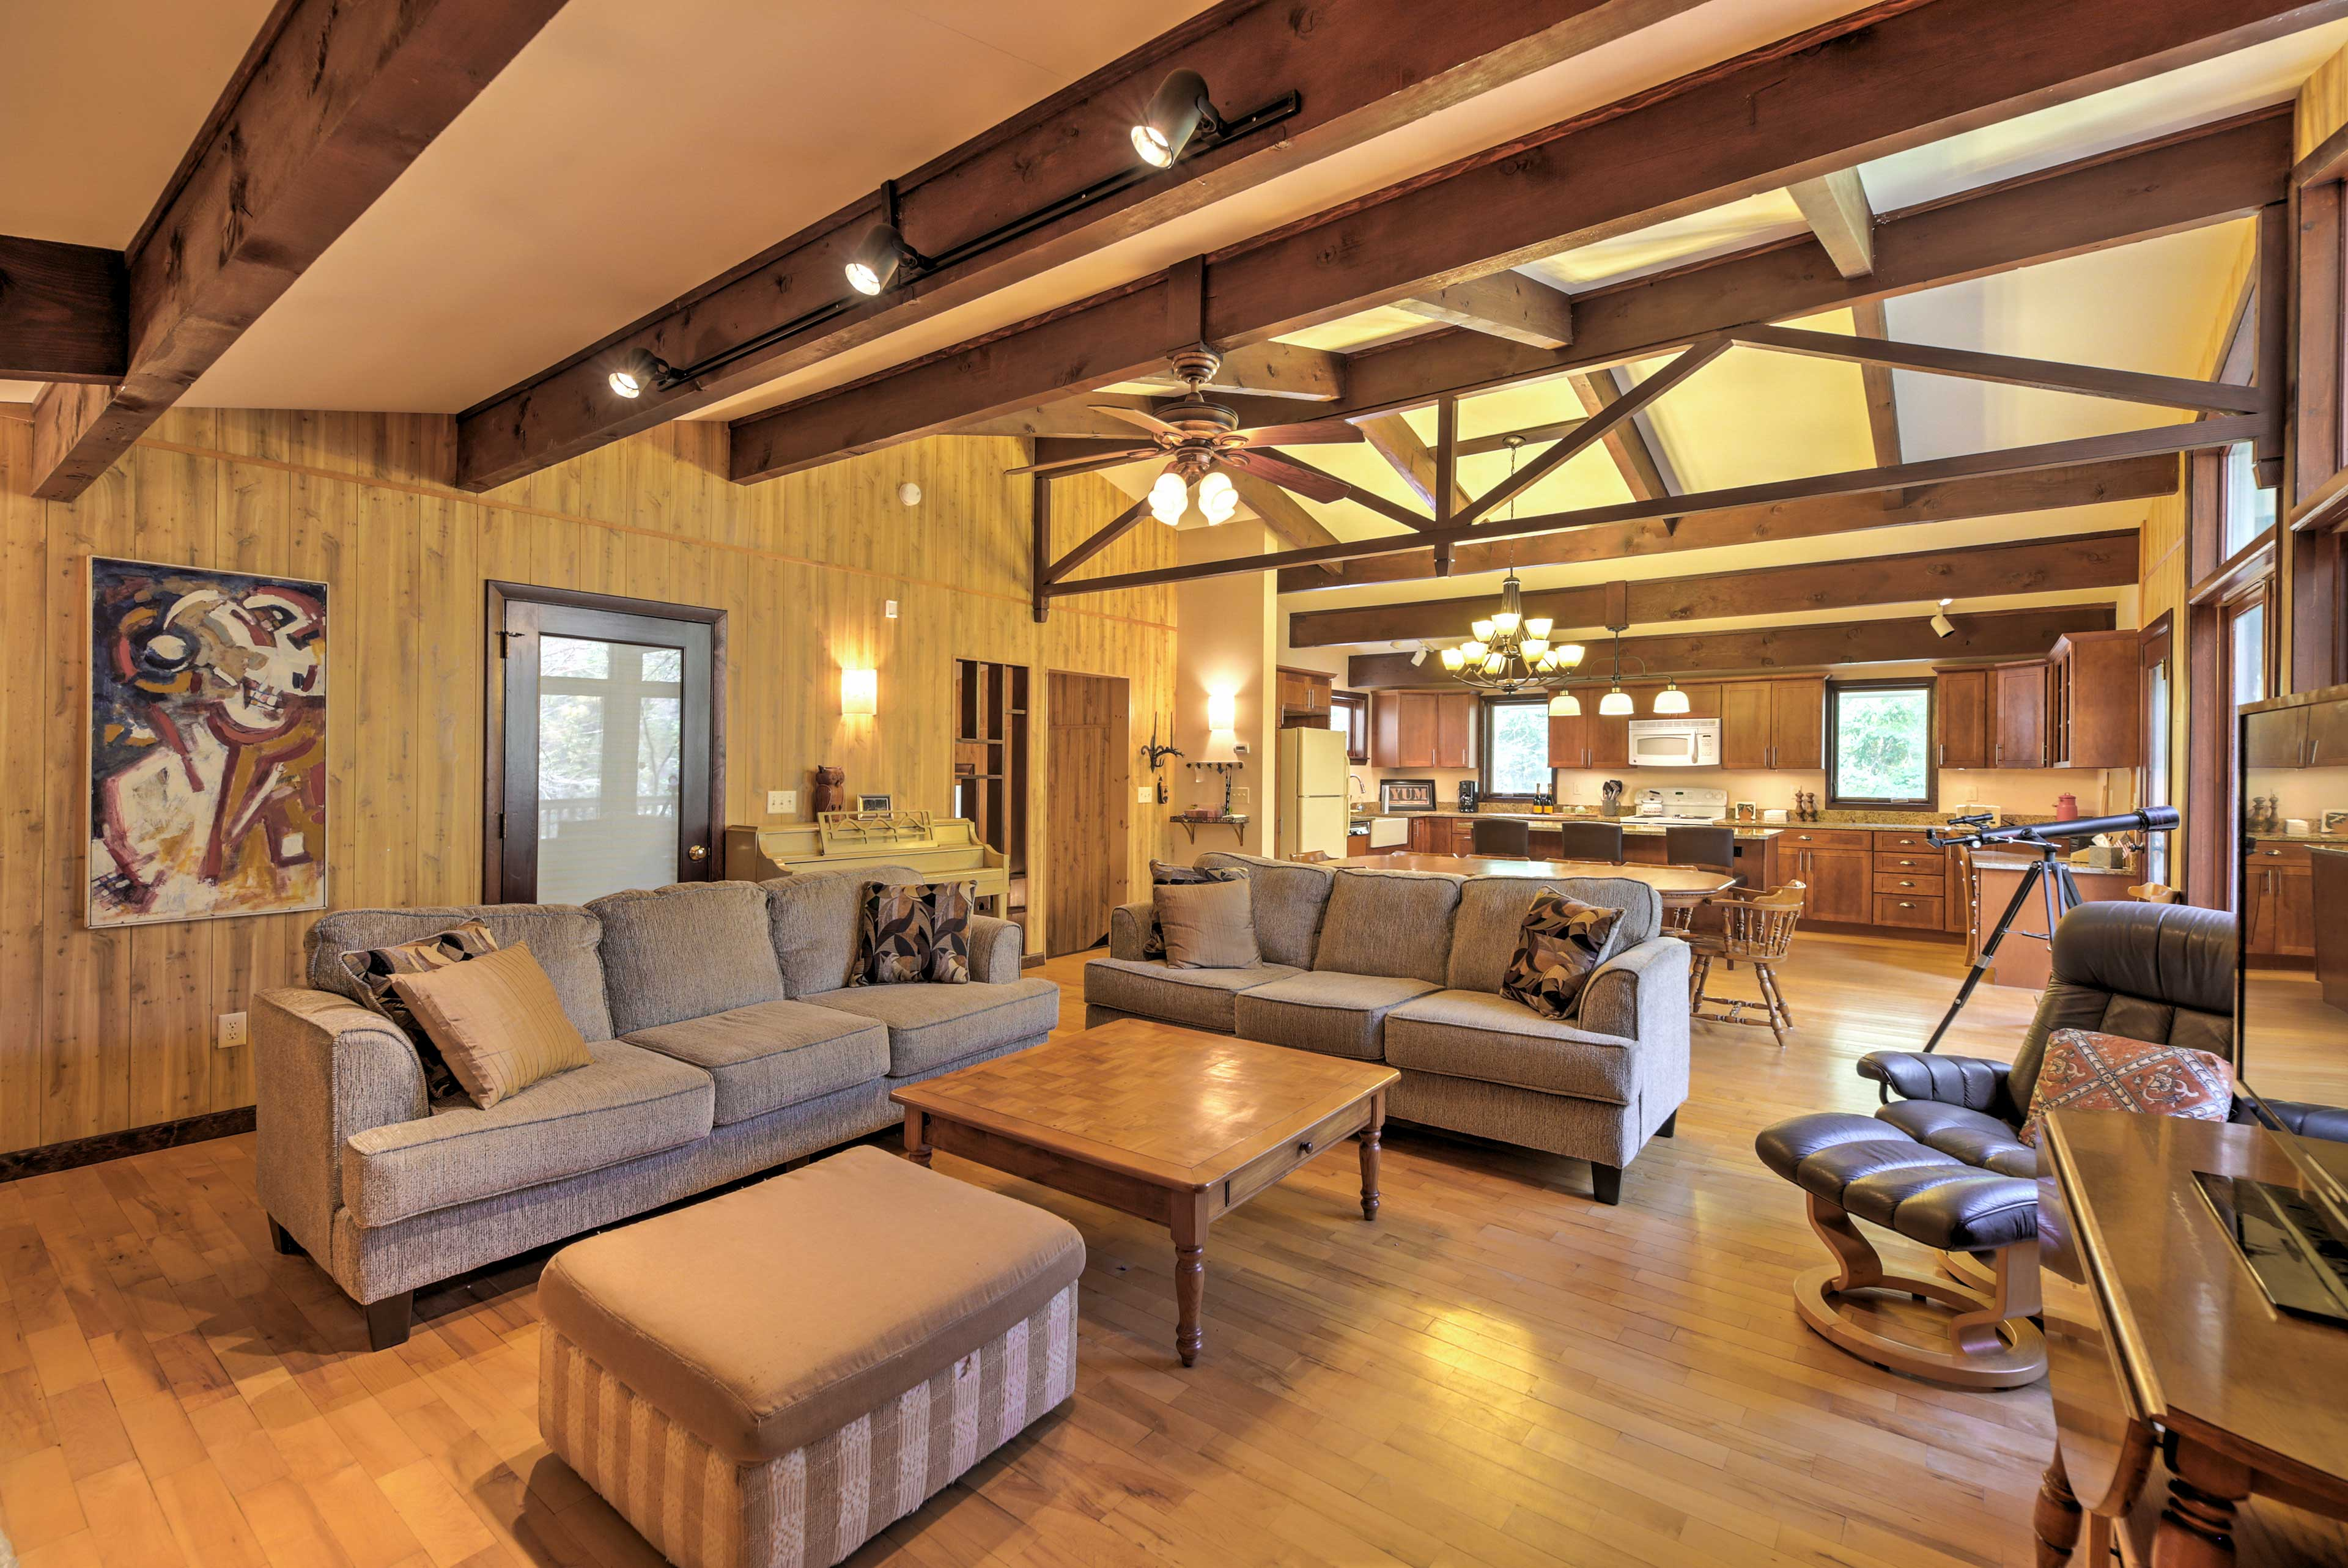 This 4,000-square-foot vacation rental home boasts beautiful exposed beams.